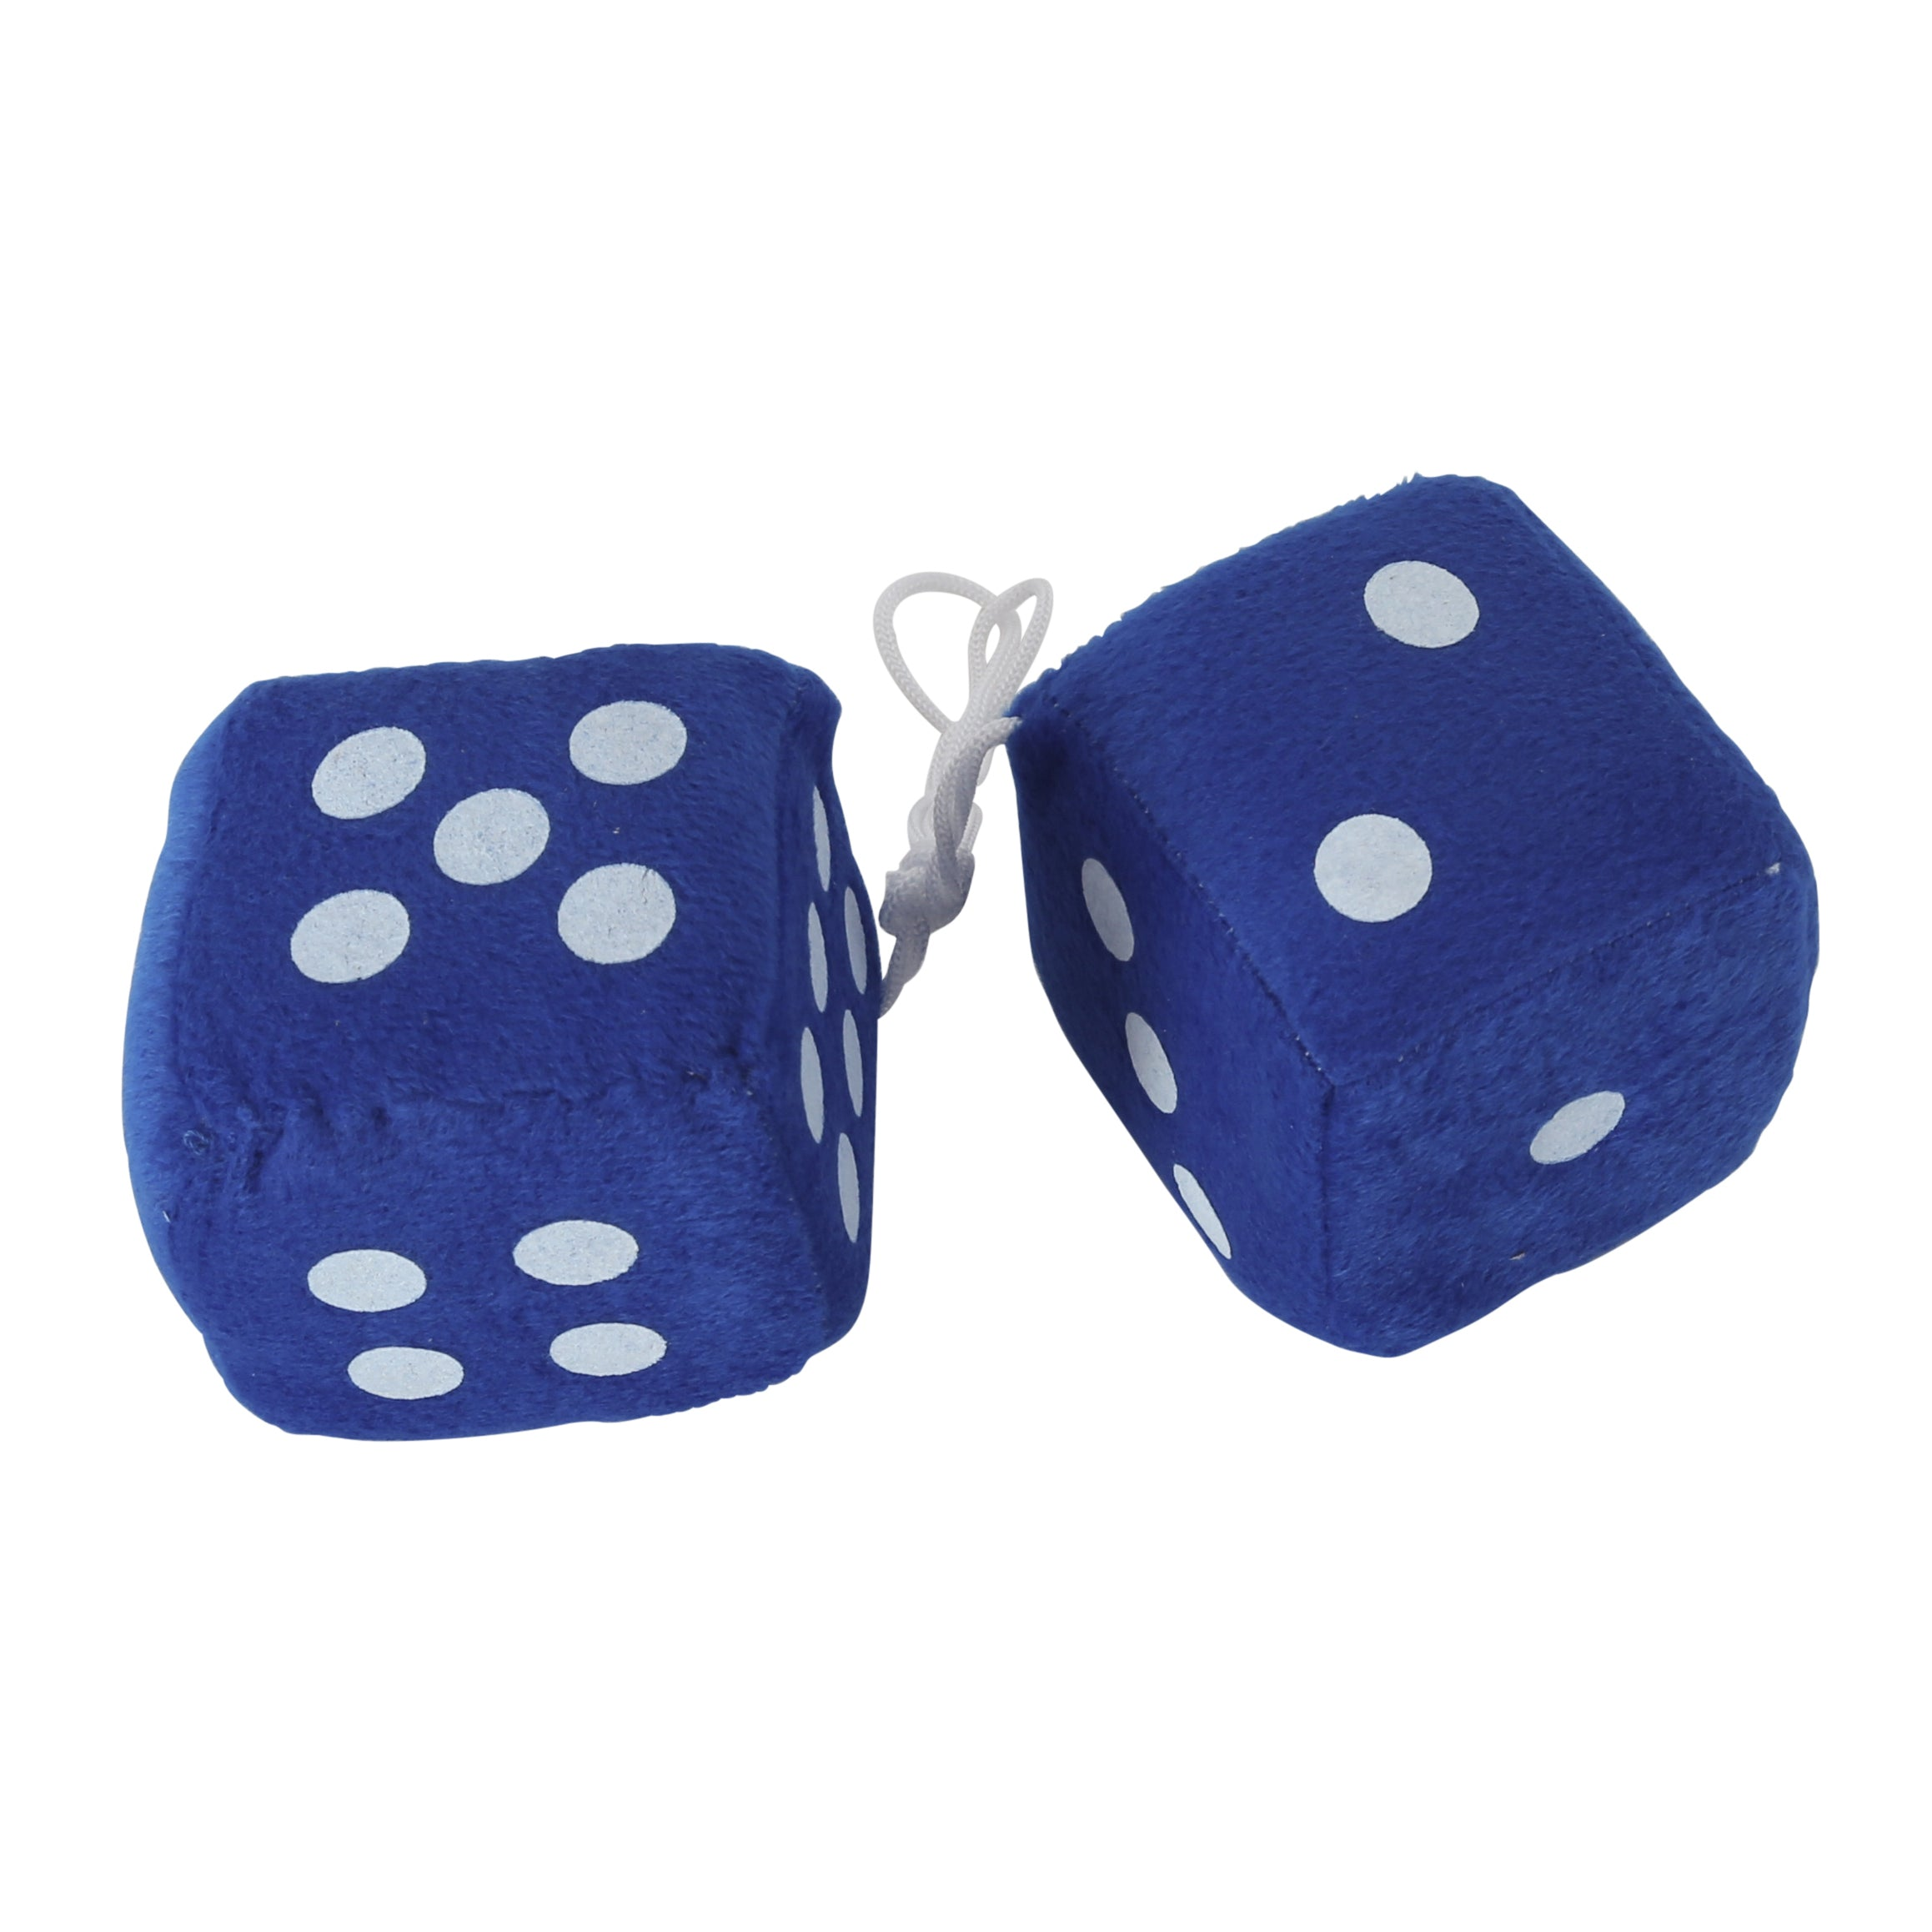 Fuzzy Dice (Blue) • 50's Style